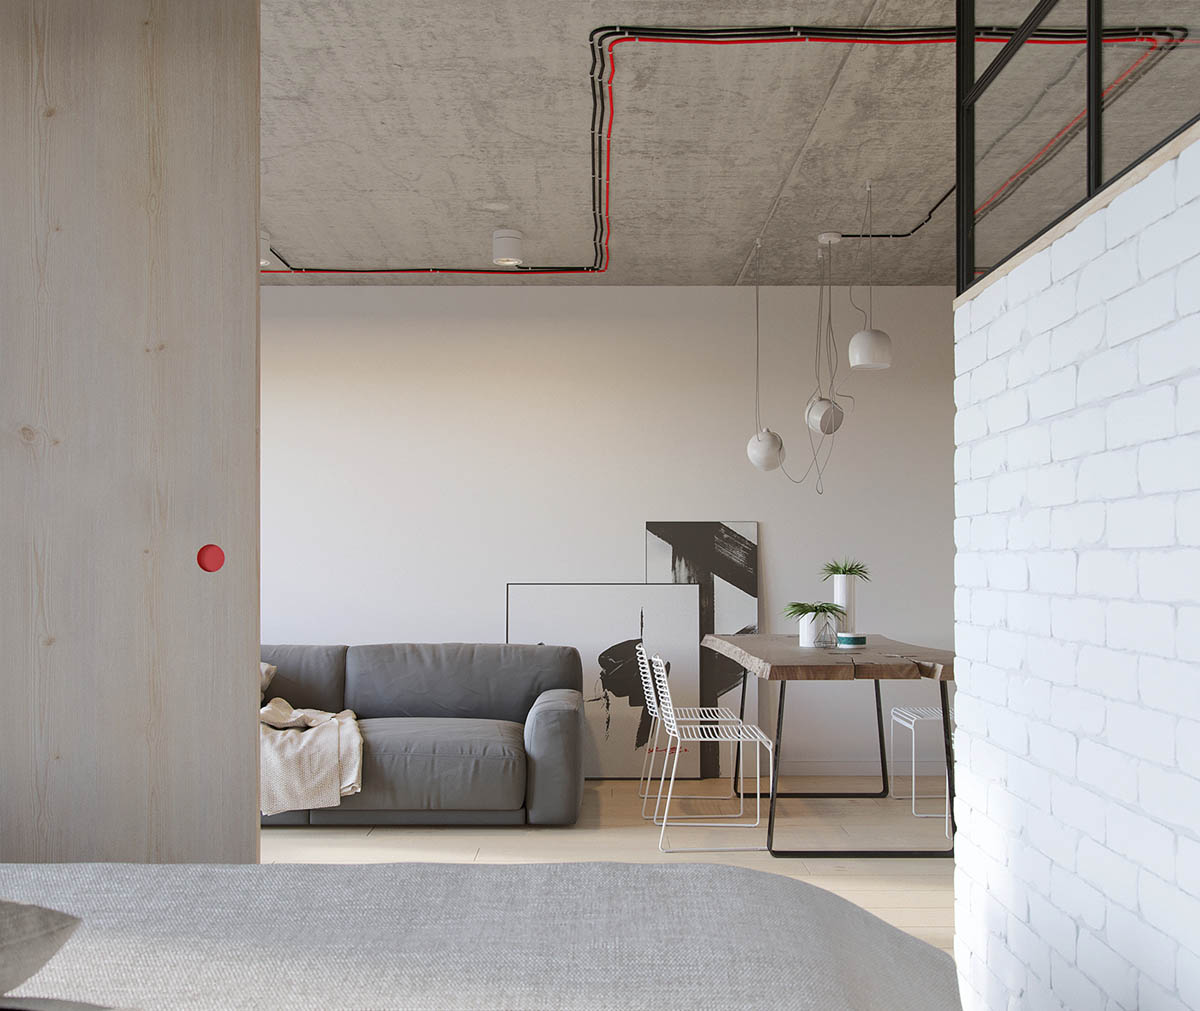 Red And Black Feature Wiring Exposed Brick Wall Industrial Apartment - Industrial russian interior with quirky colour twists including floor plans